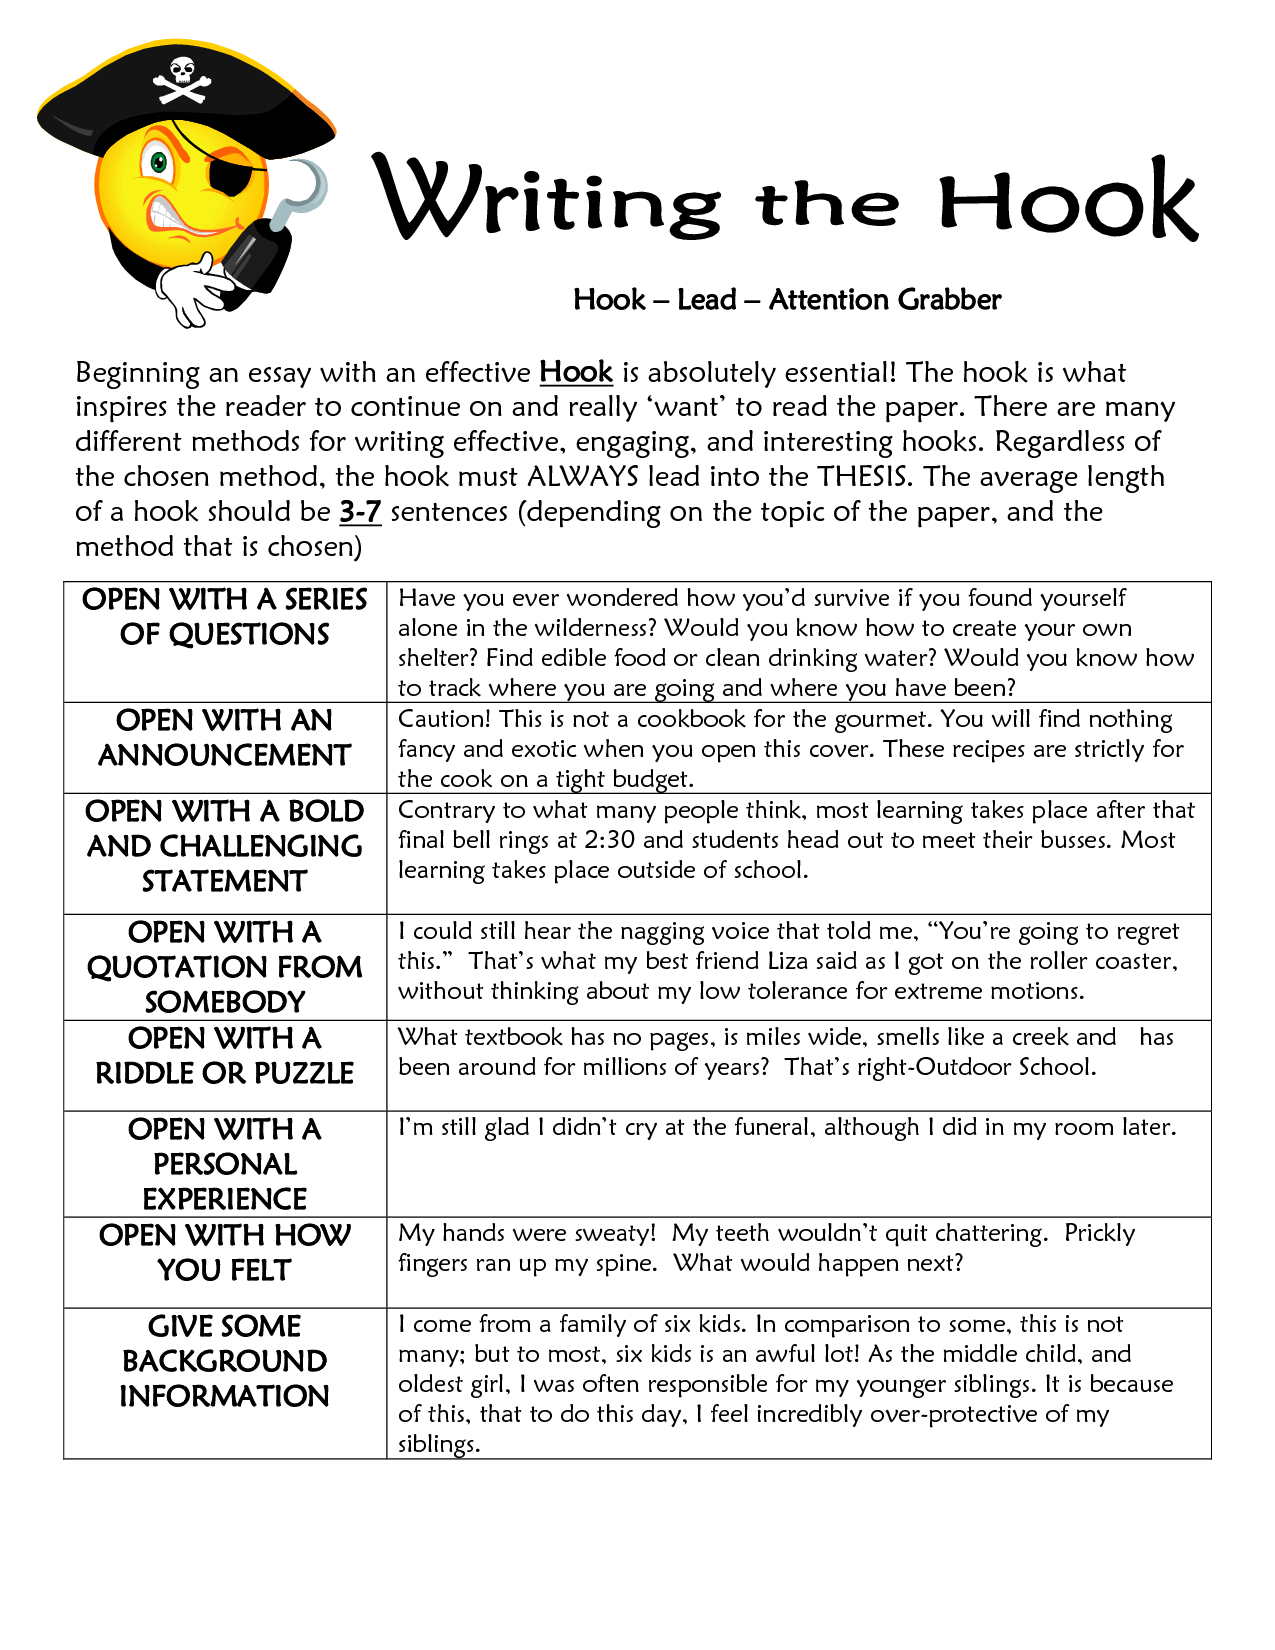 Essay hooks for middle school